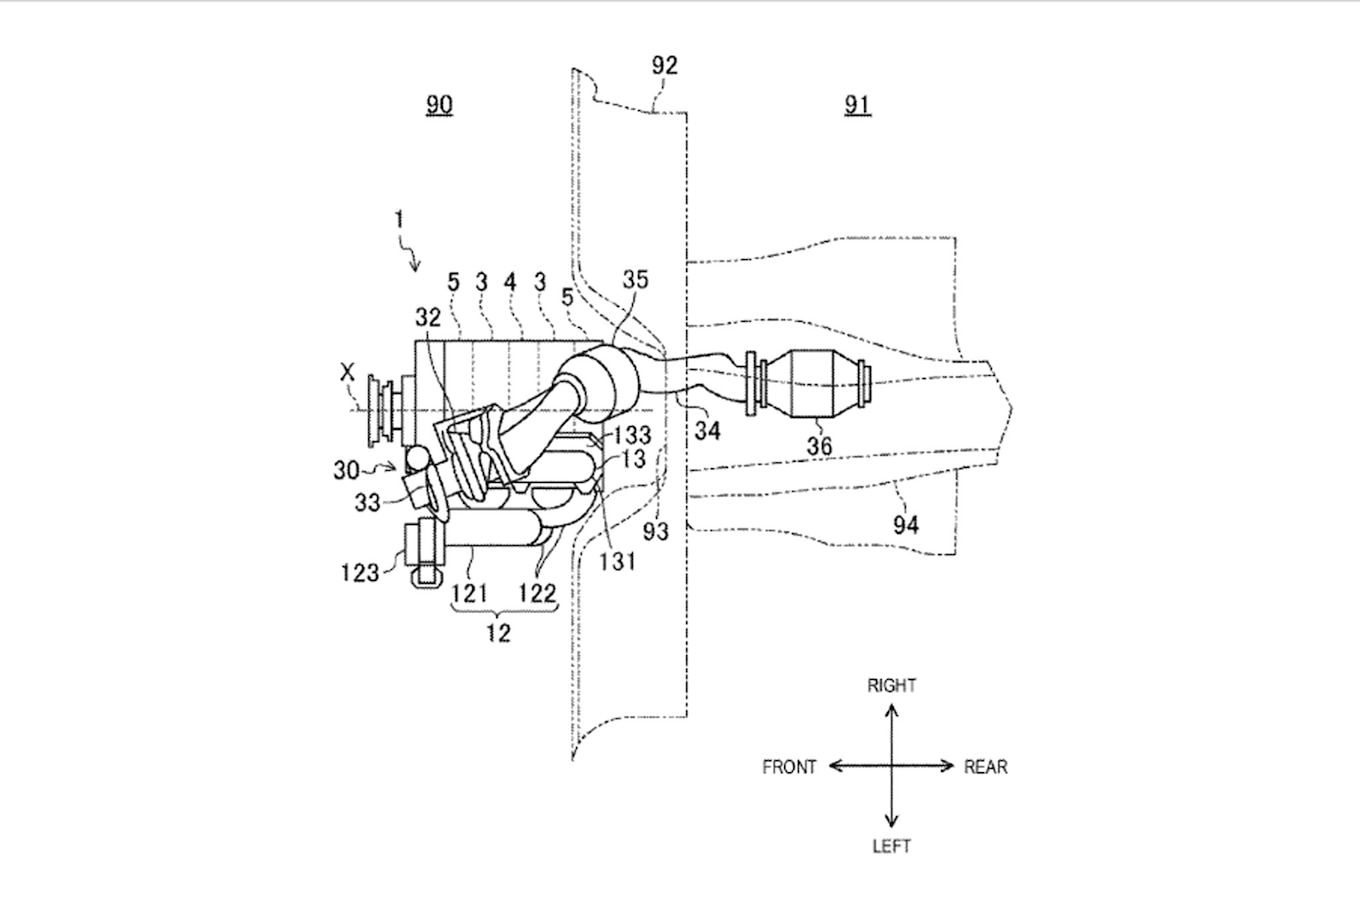 Mazda Files for Patent on New Rotary Engine